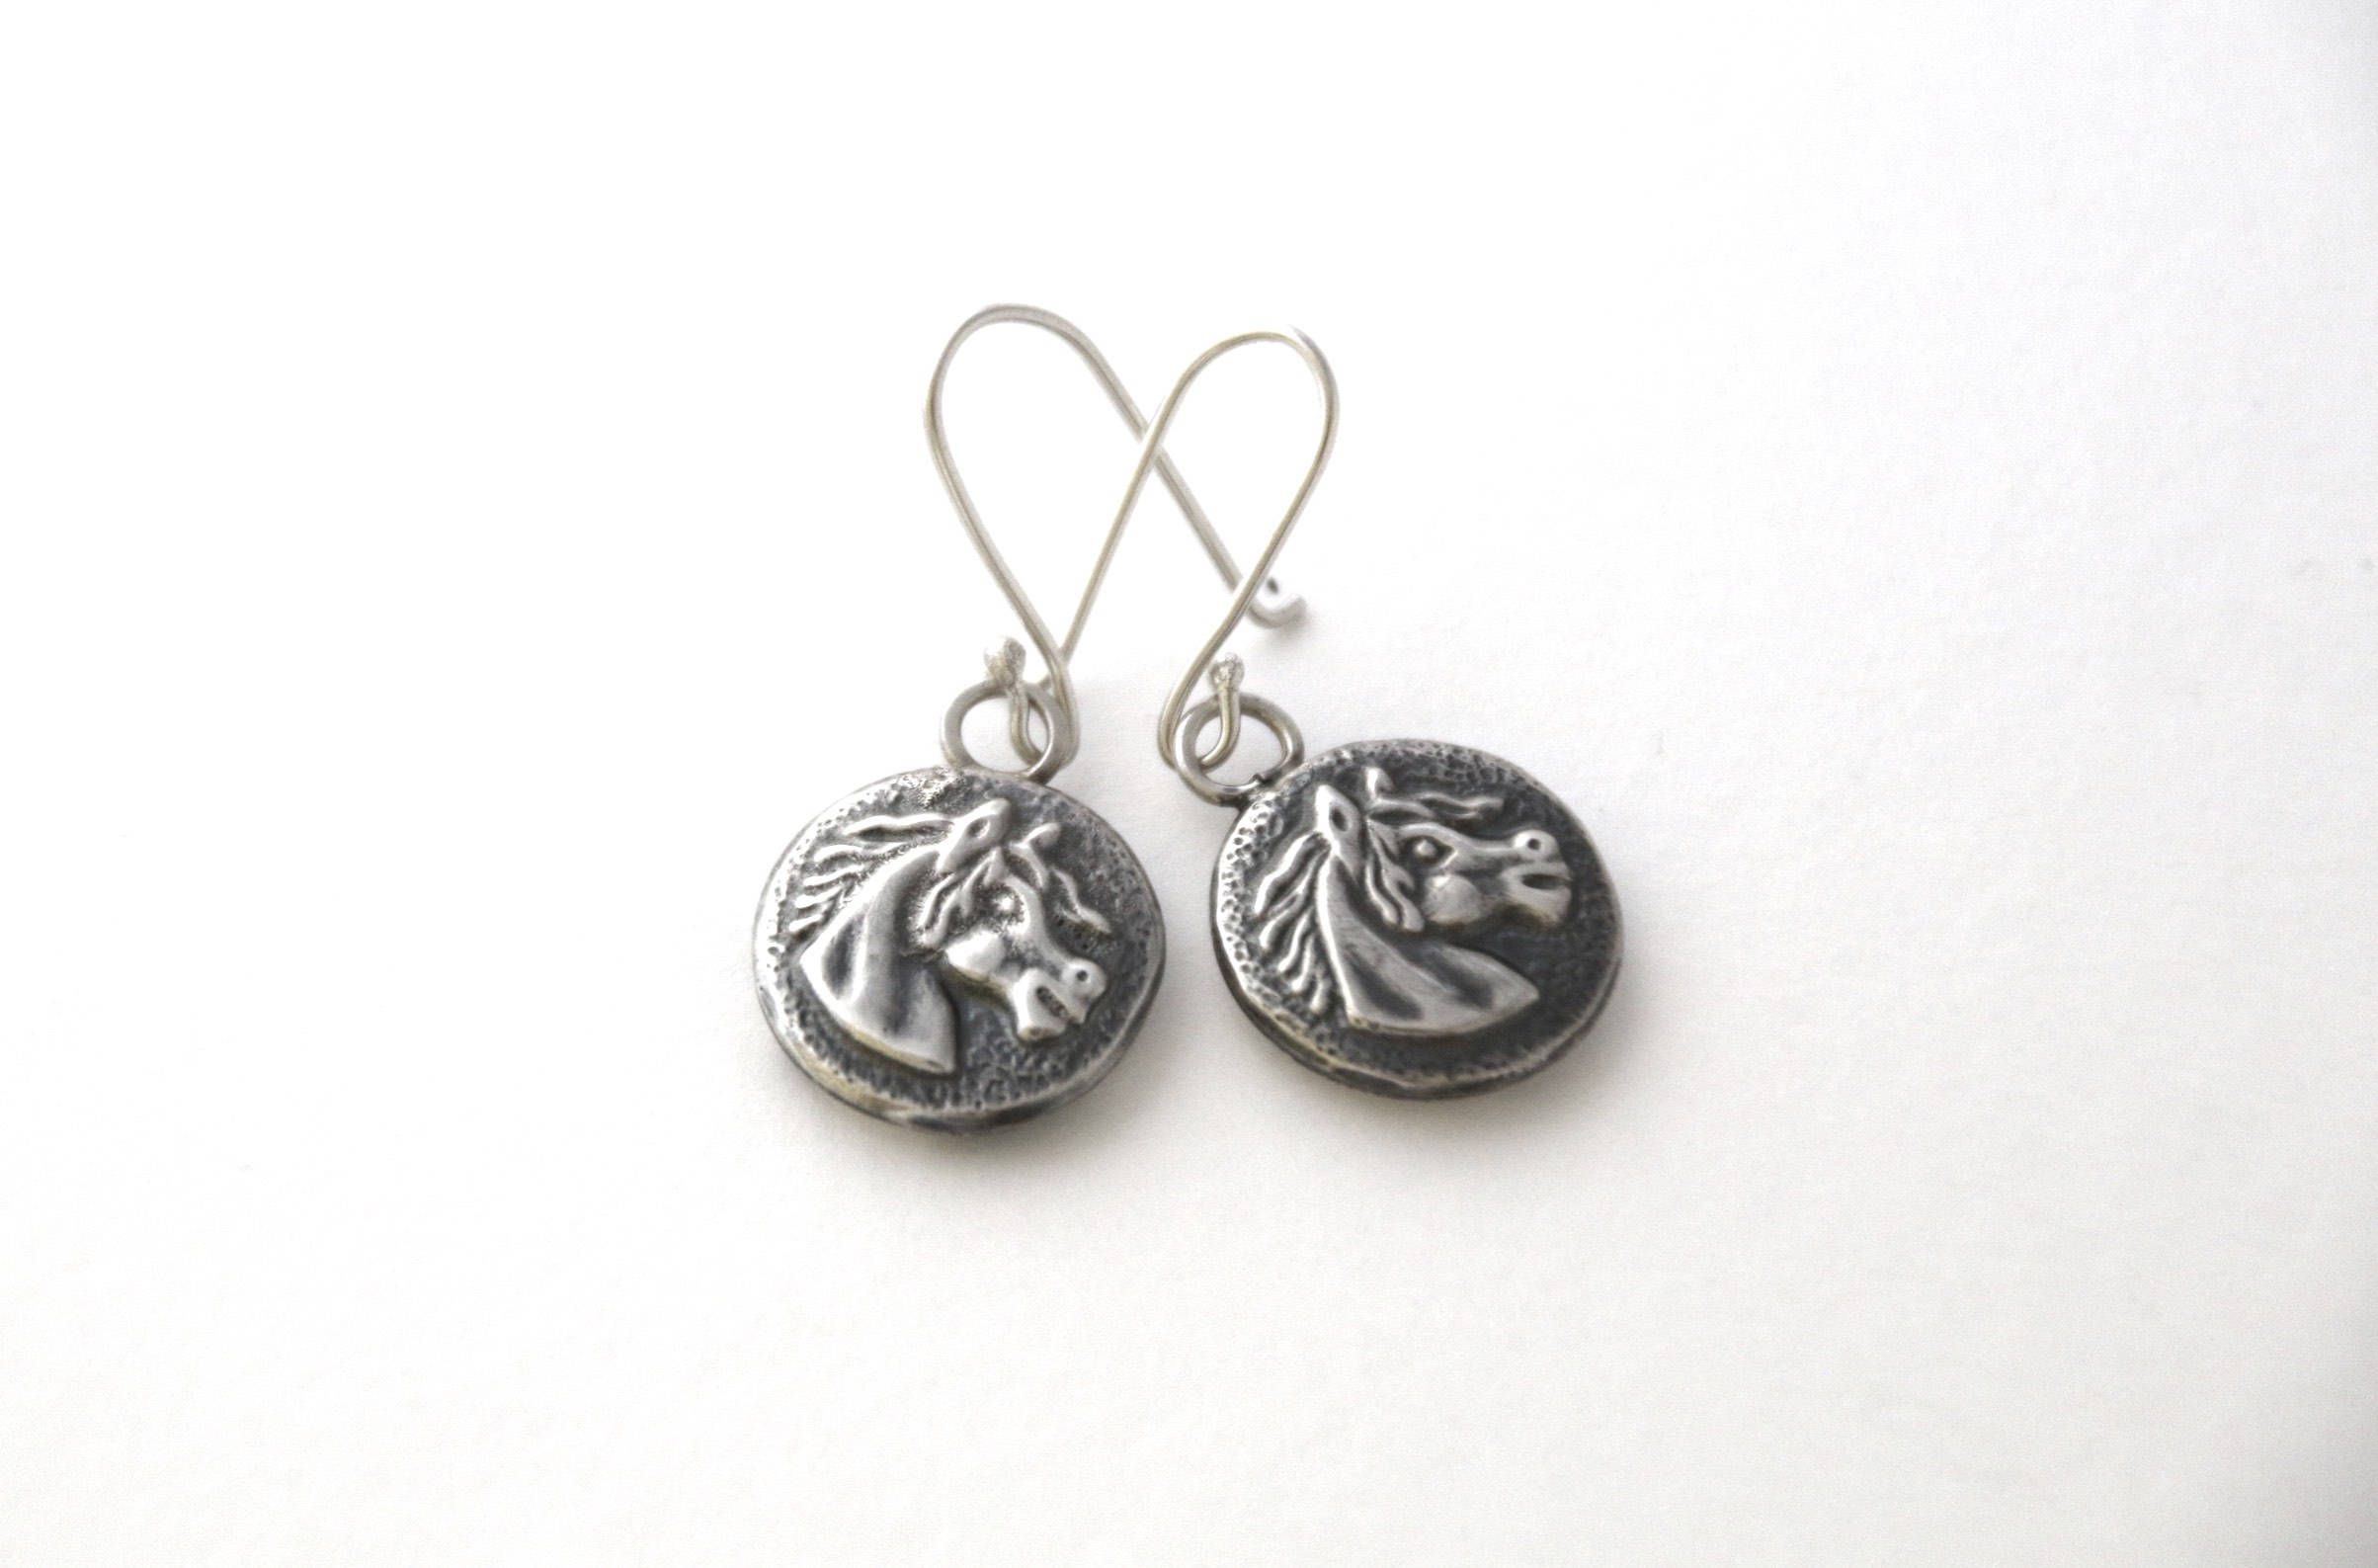 Horse Earrings Sterling Silver Horses Lover Gift Equestrian Animal Jewellery